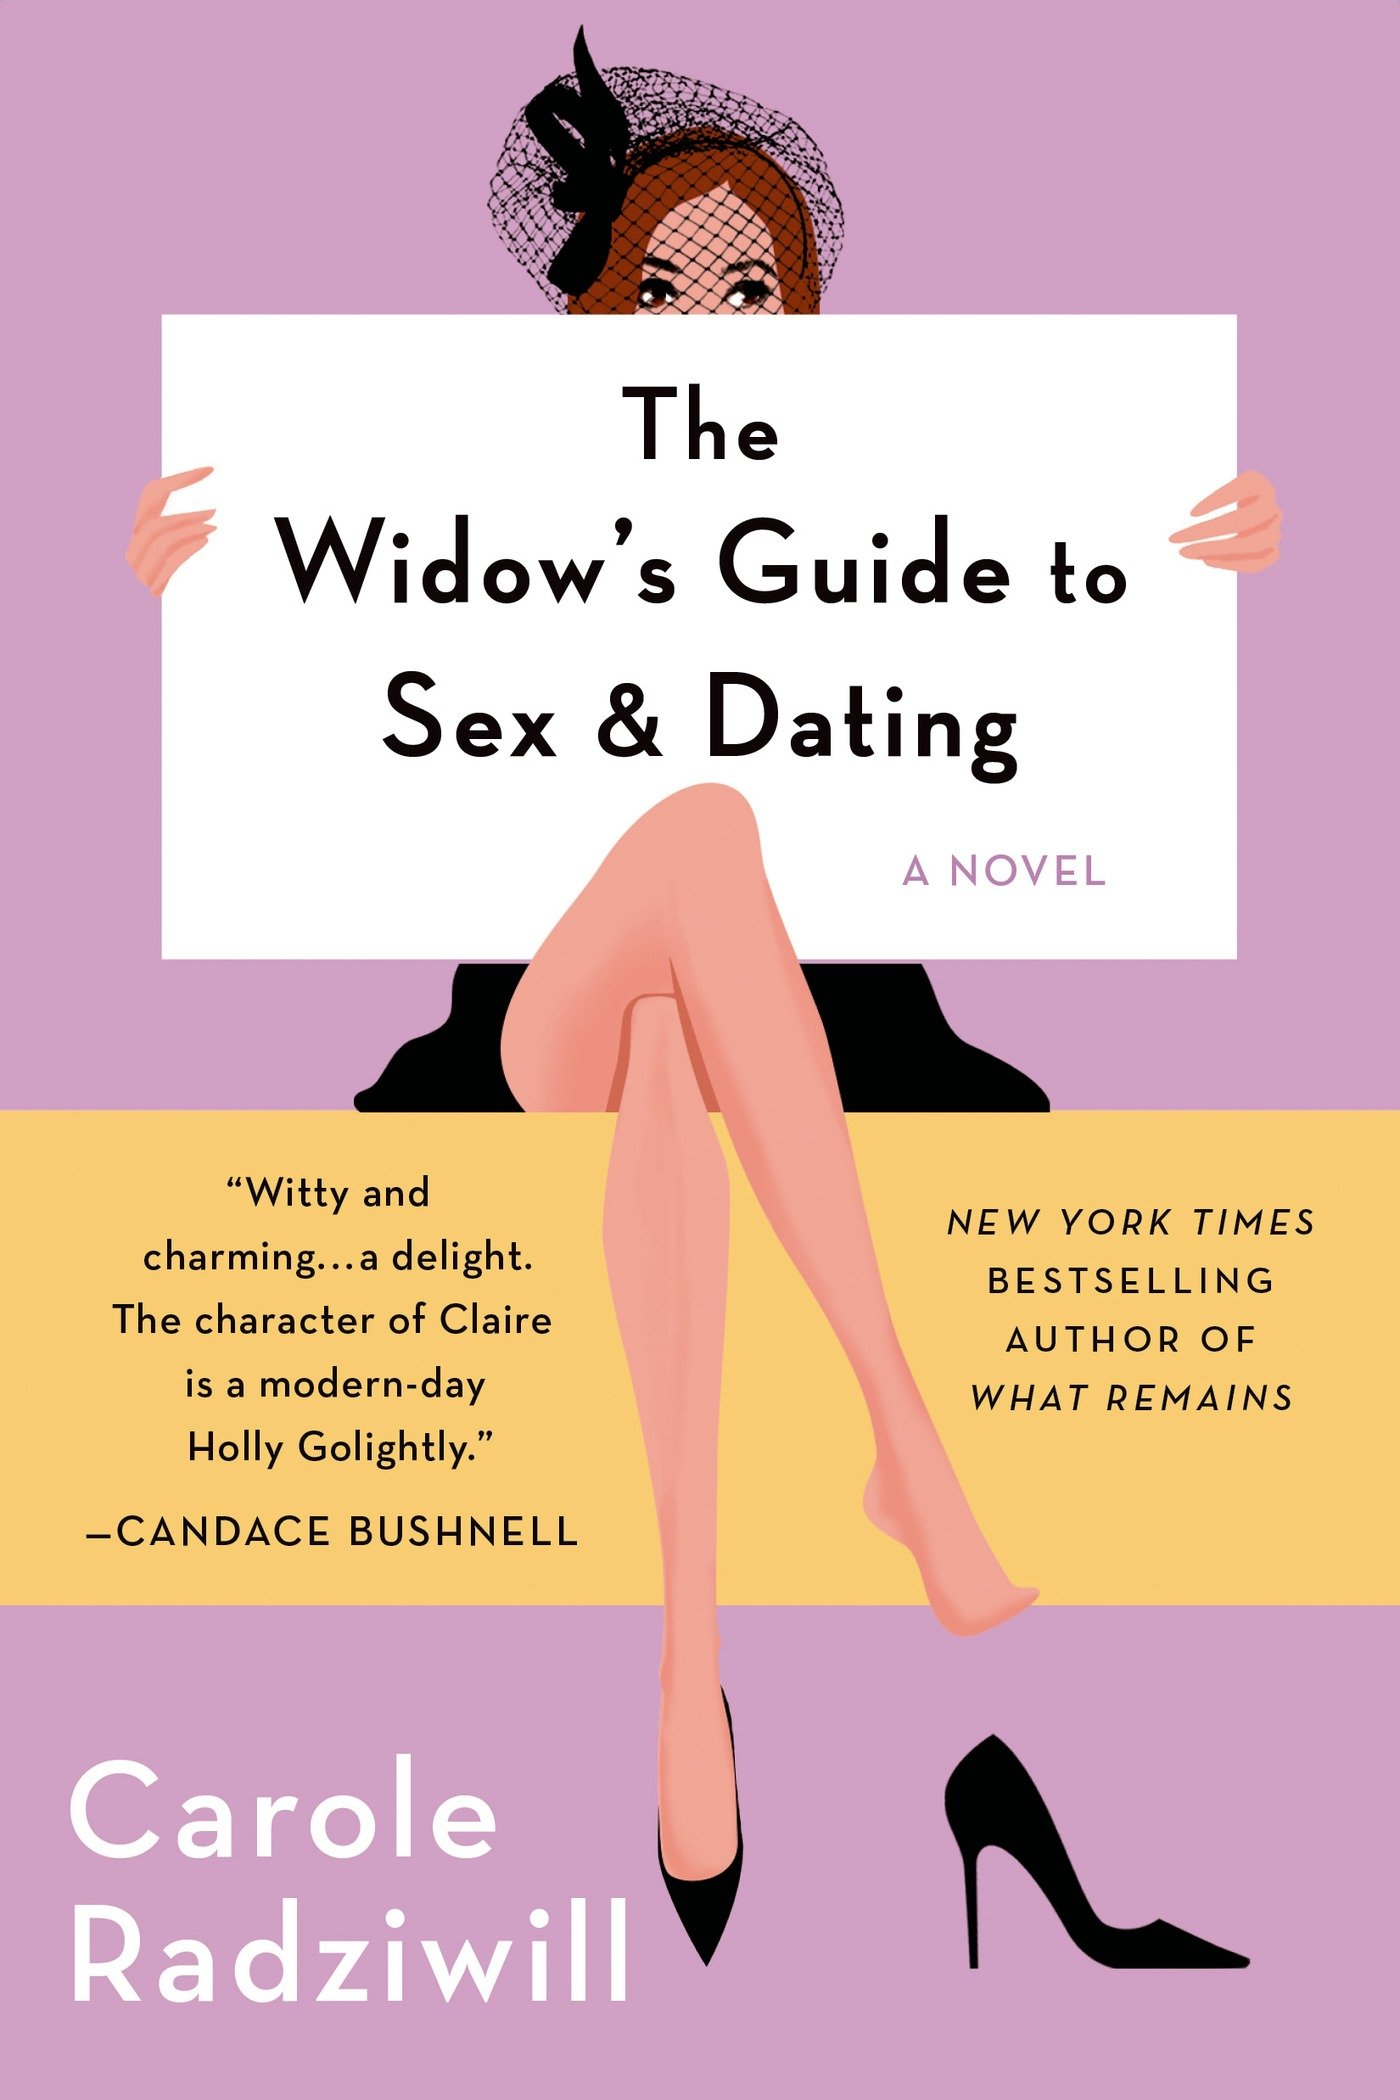 A widows guide to sex & dating